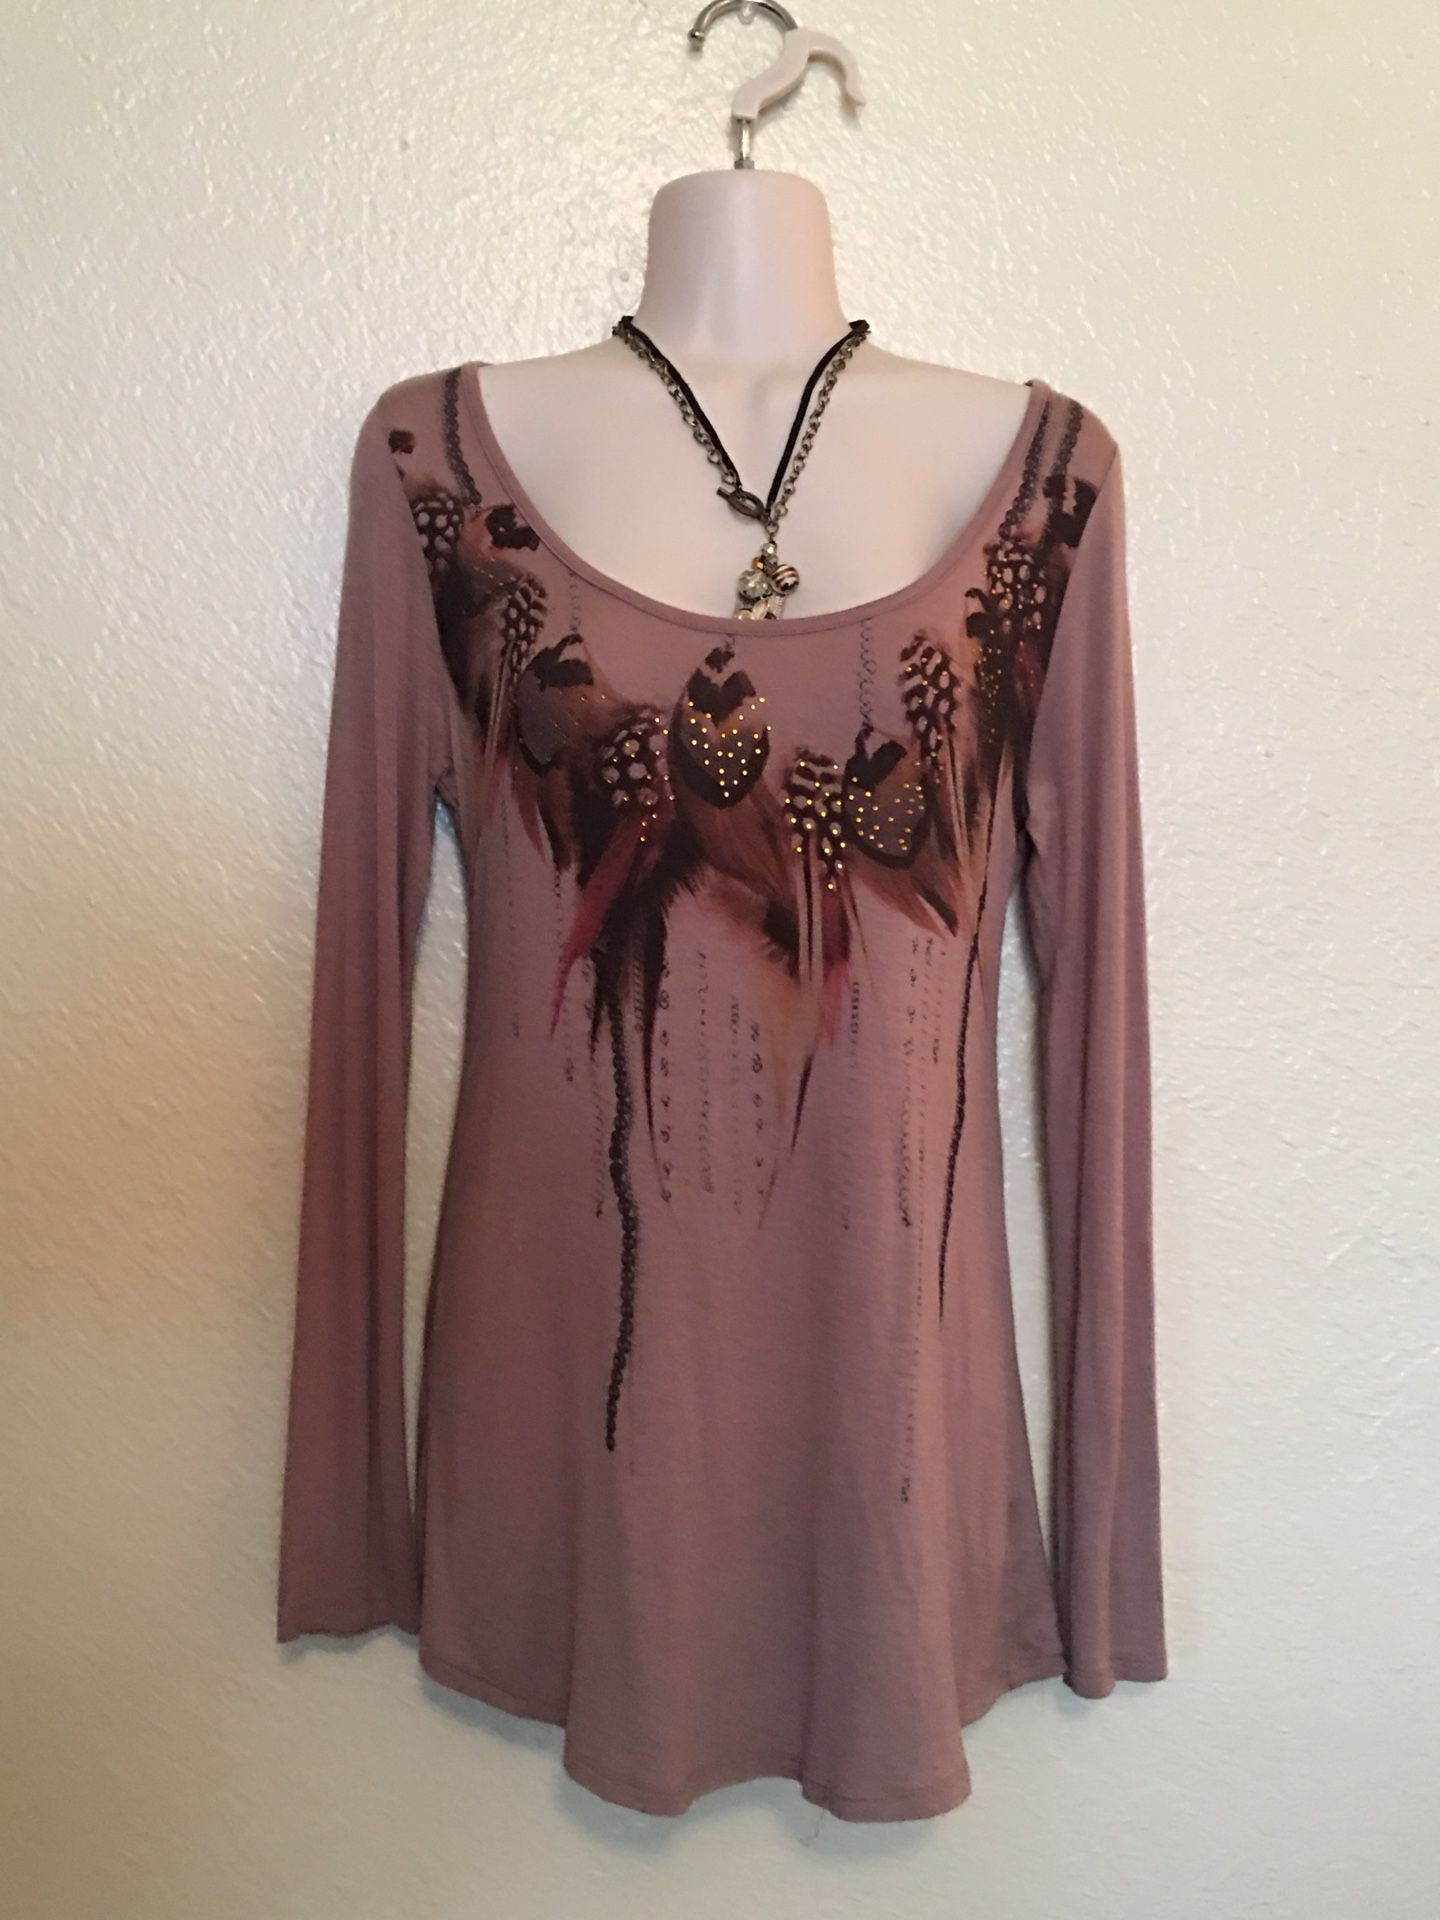 Brown small long sleeve top with slits and black lace on back